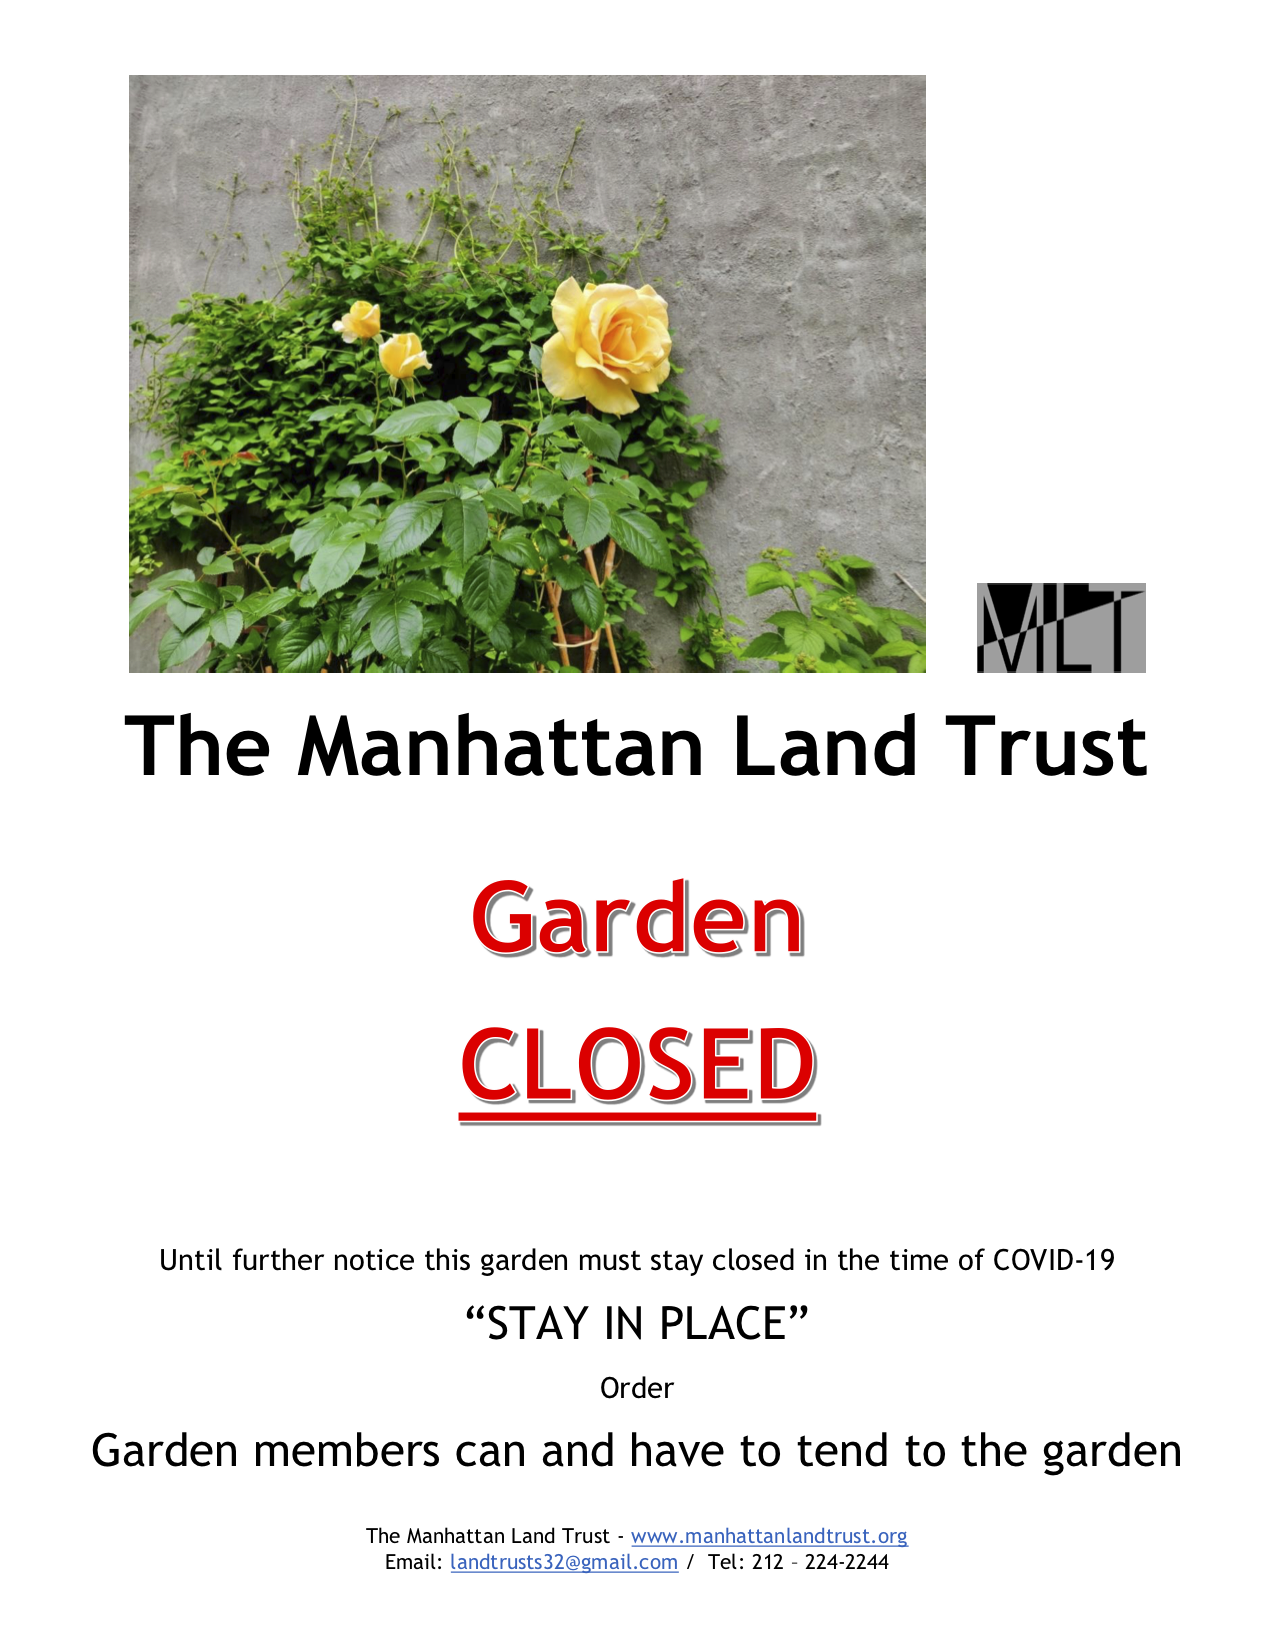 Manhattan Land Trust gardens are closed to the public due to COVID-19